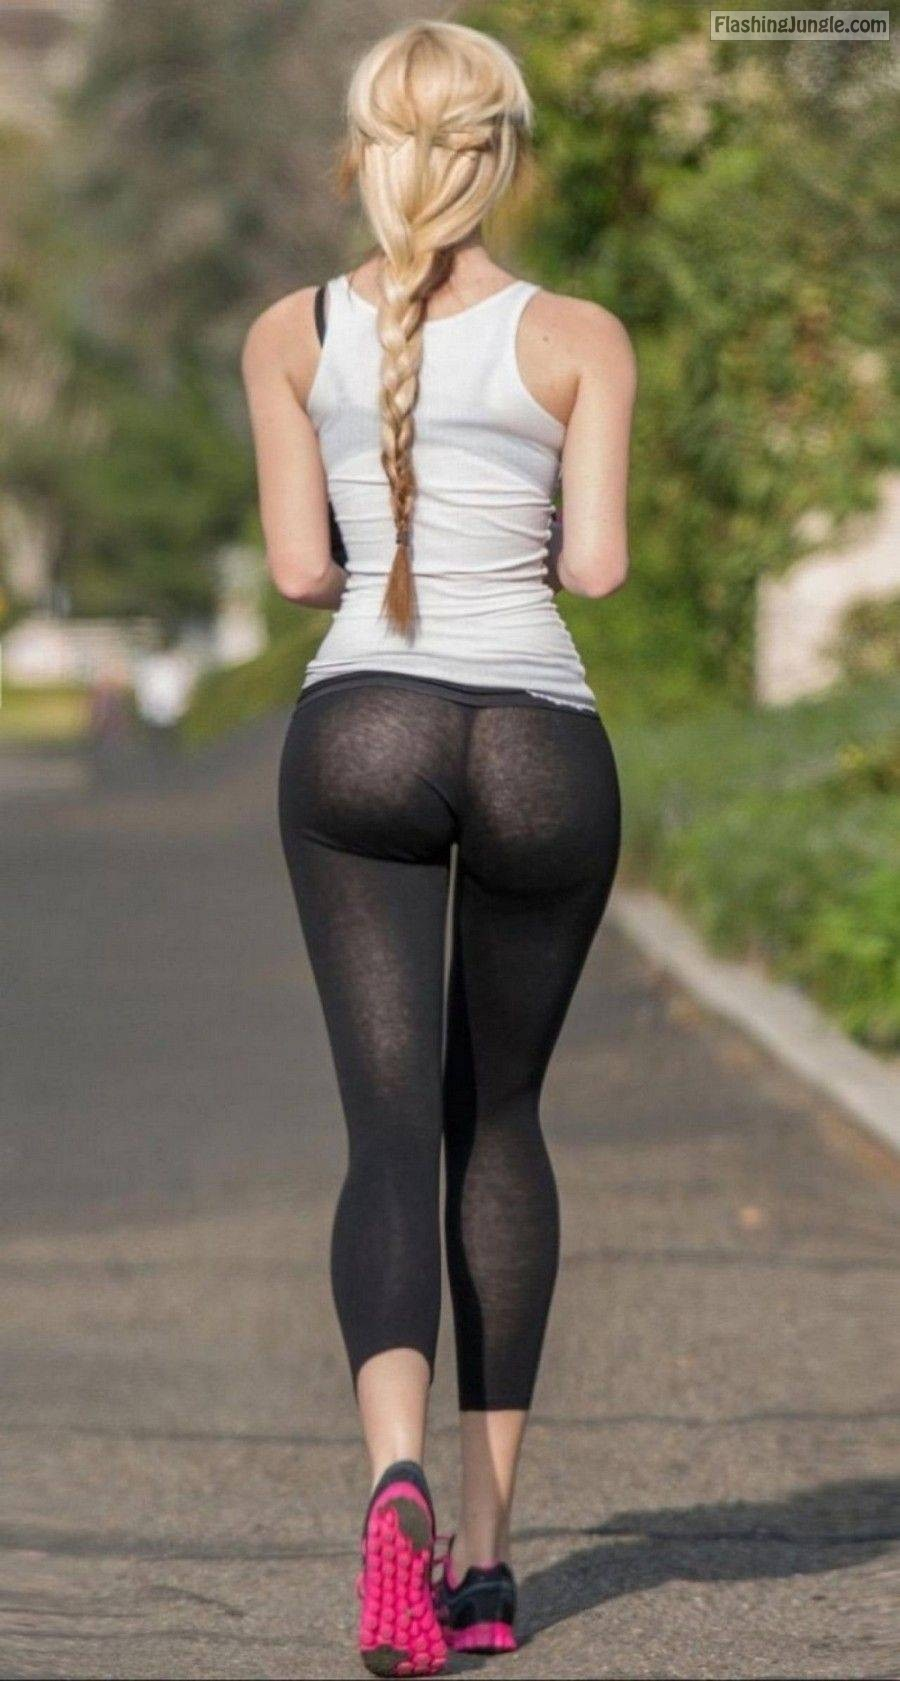 pussy in see through pants